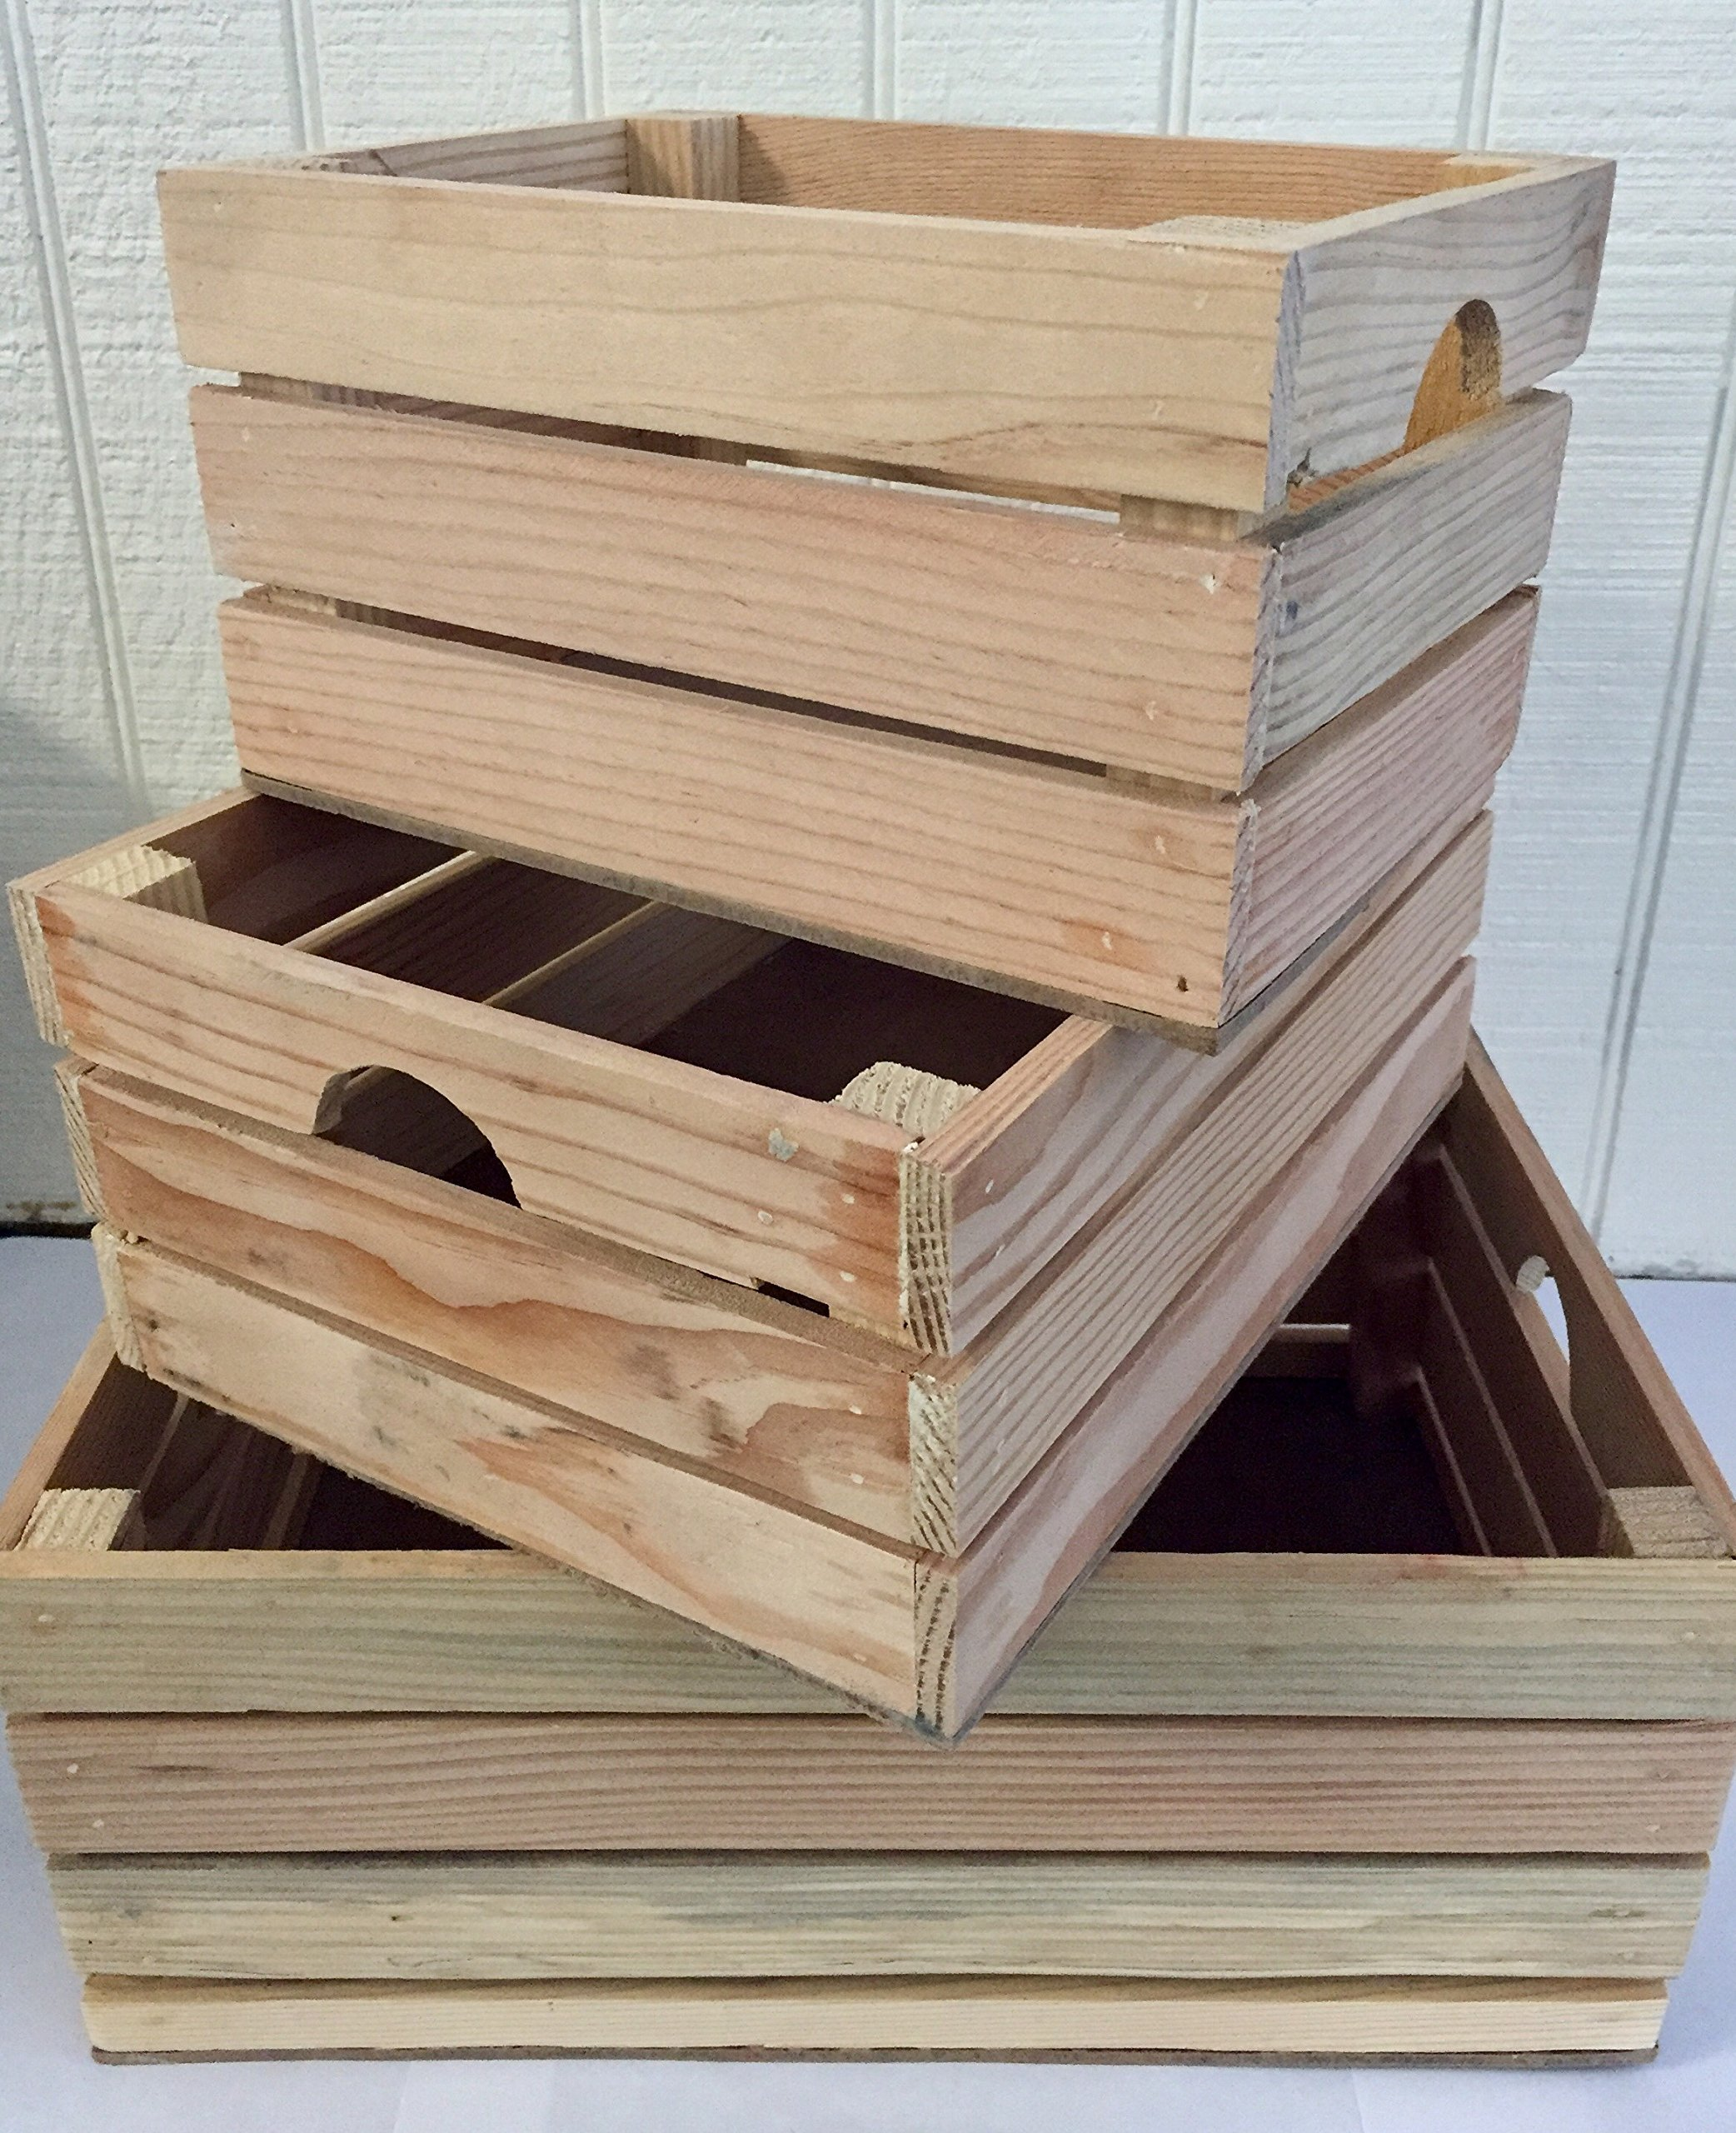 Rustic Decorative Wood Crates (Set of 3) (Natural Wood)